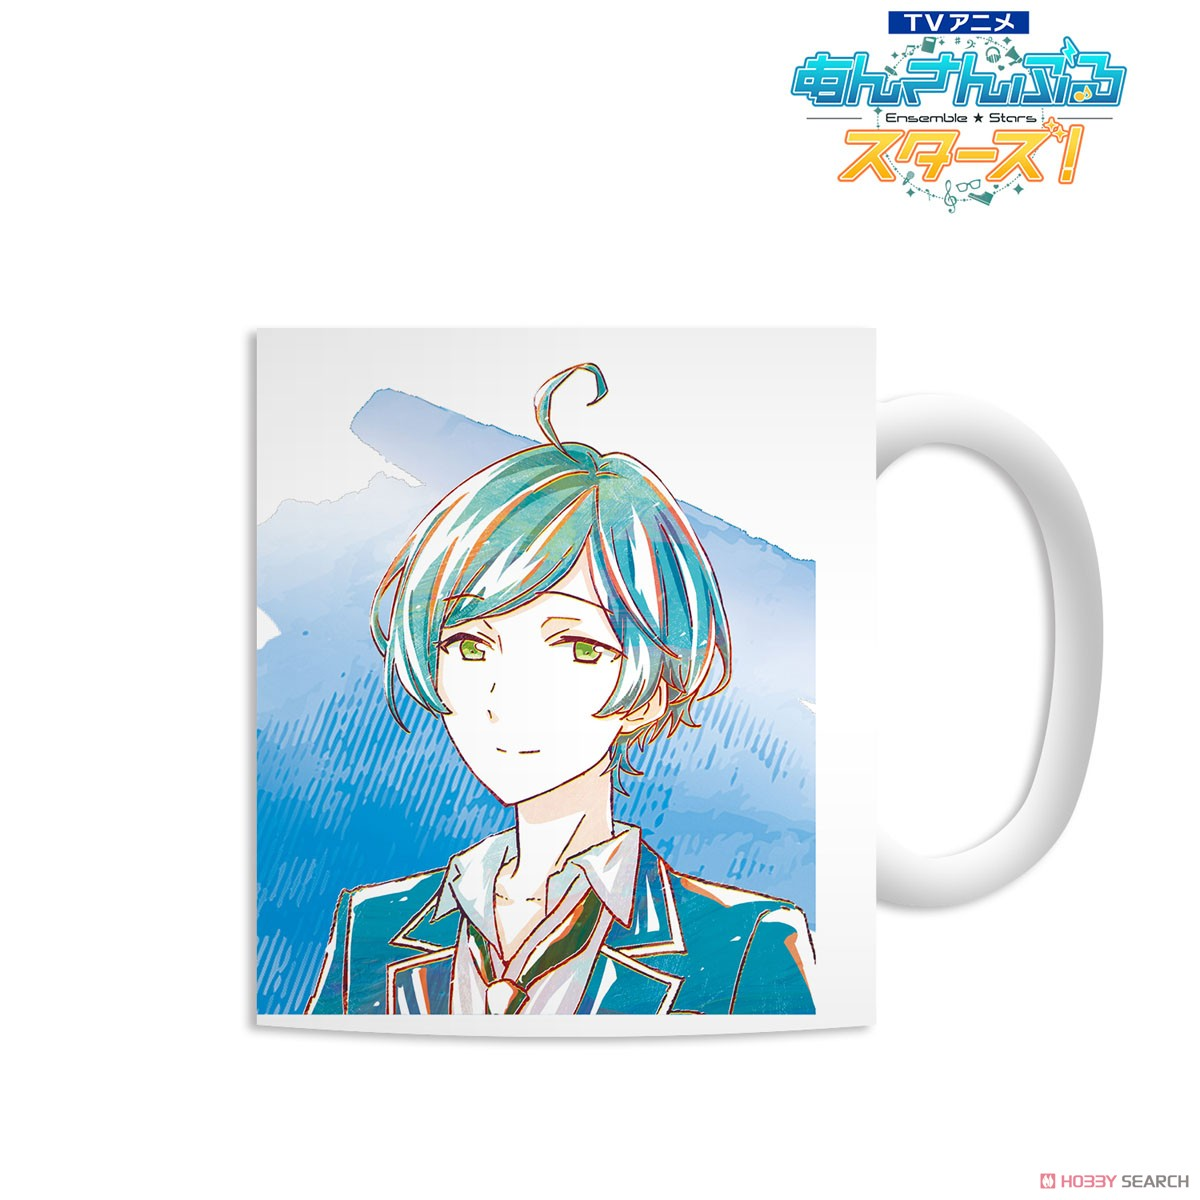 TV Animation [Ensemble Stars!] Kanata Shinkai Ani-Art Mug Cup (Anime Toy) Item picture1